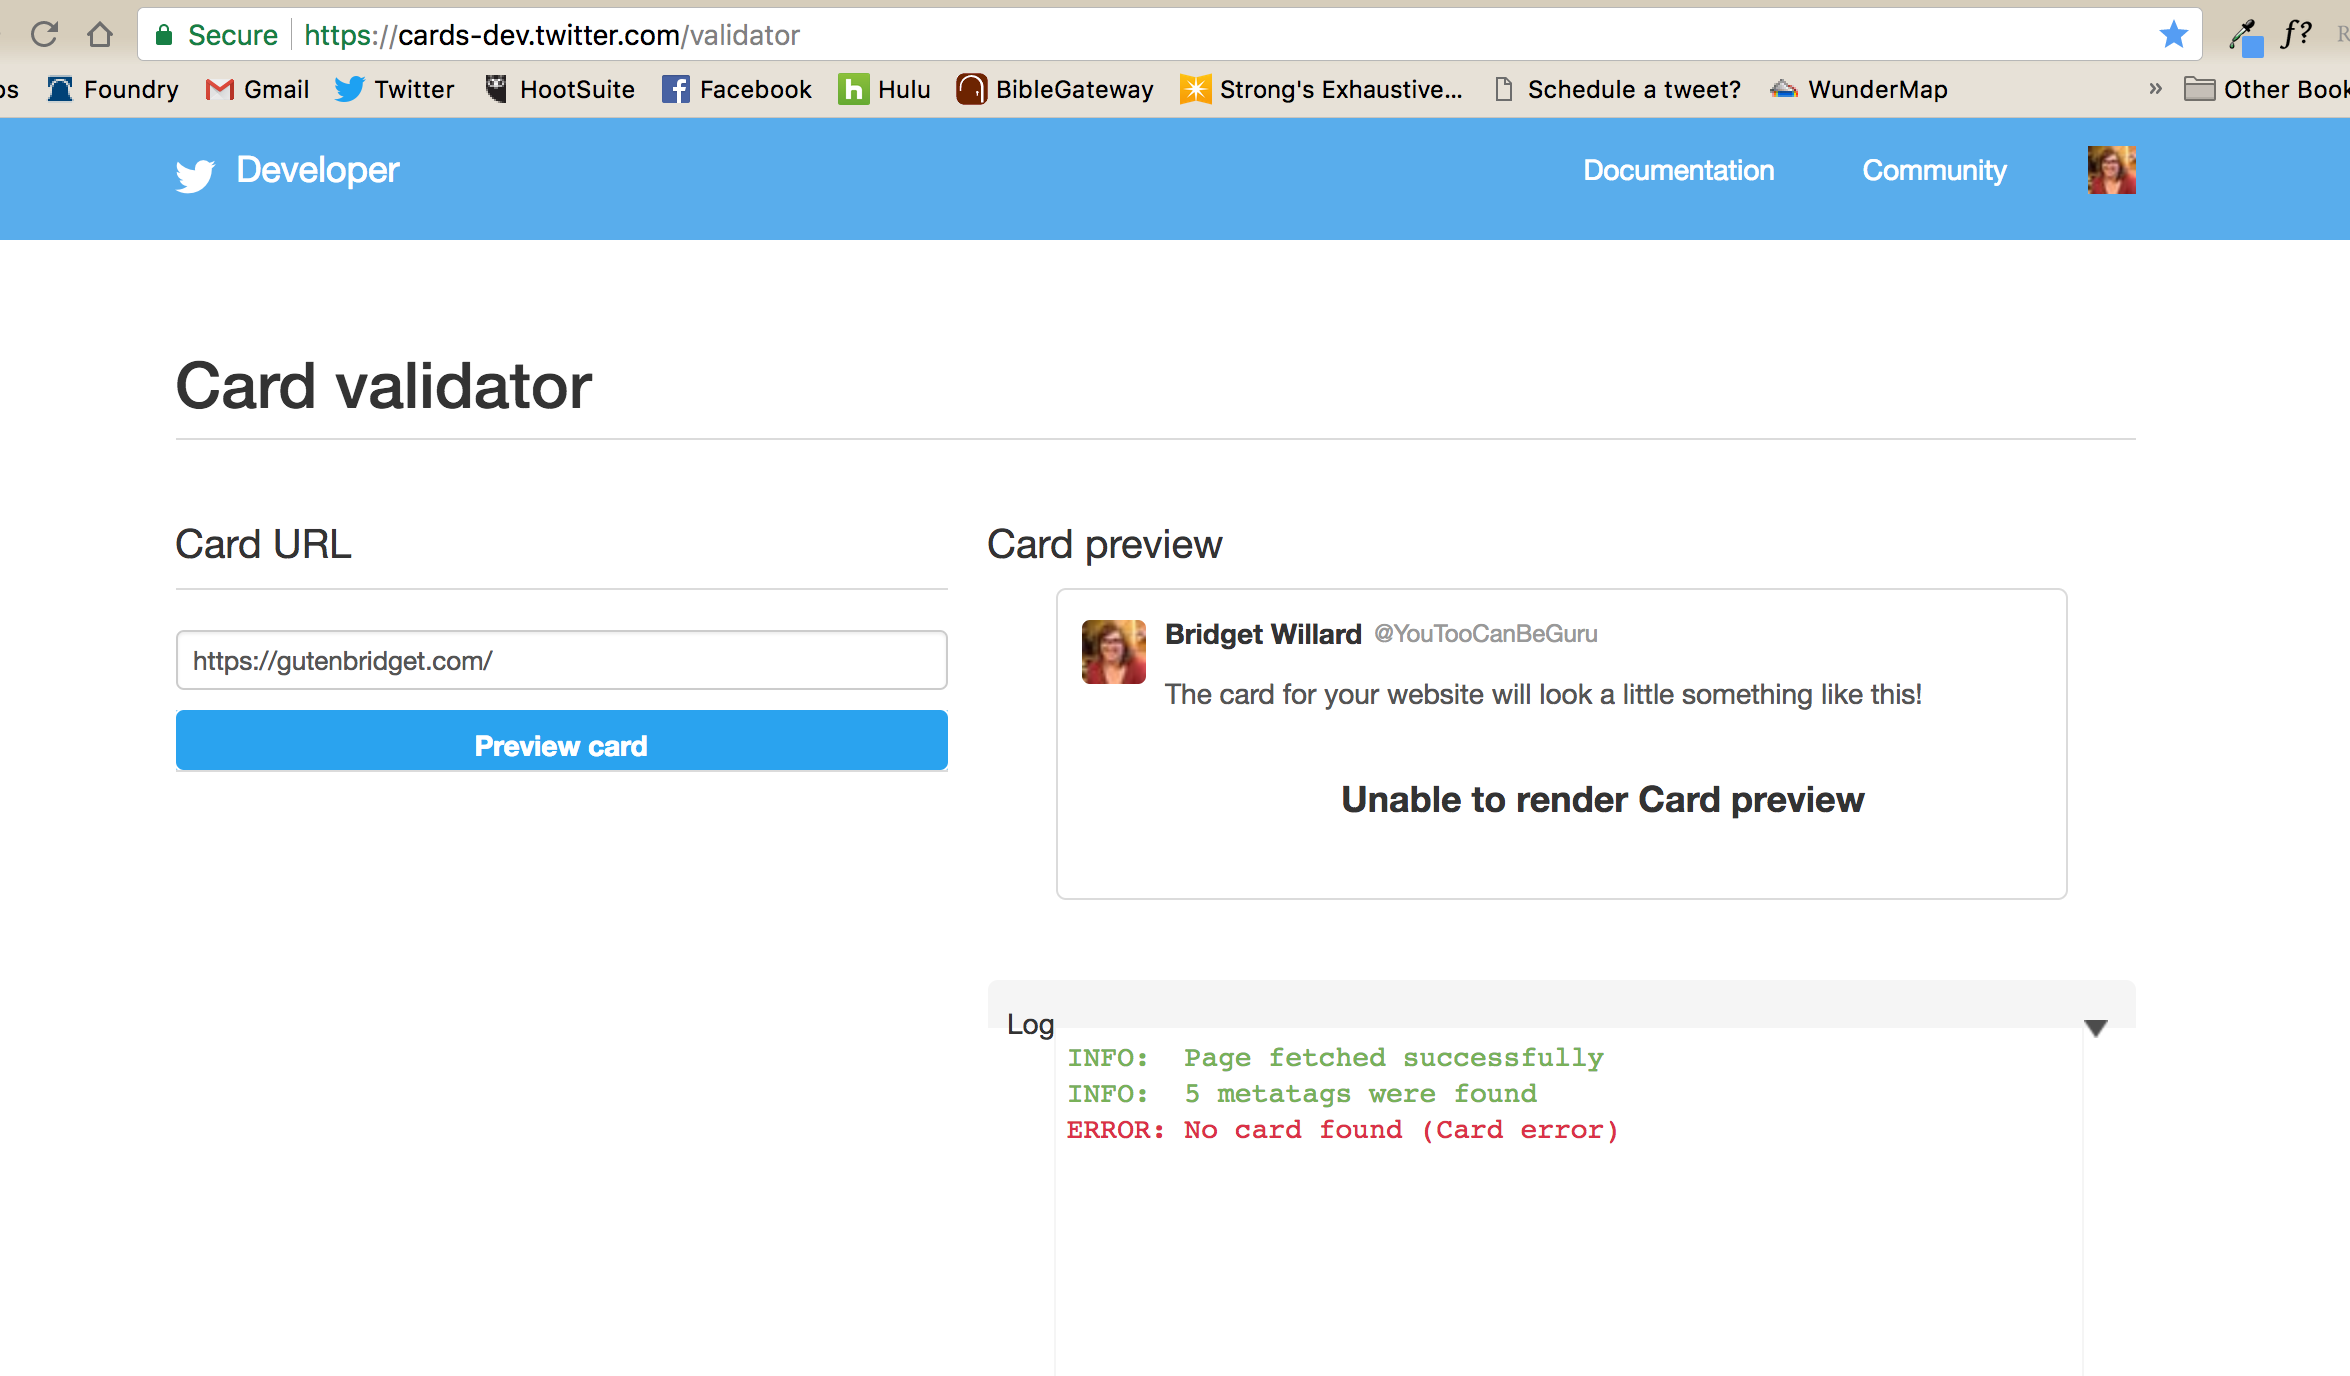 twitter-card-validator-unable-to-read-card